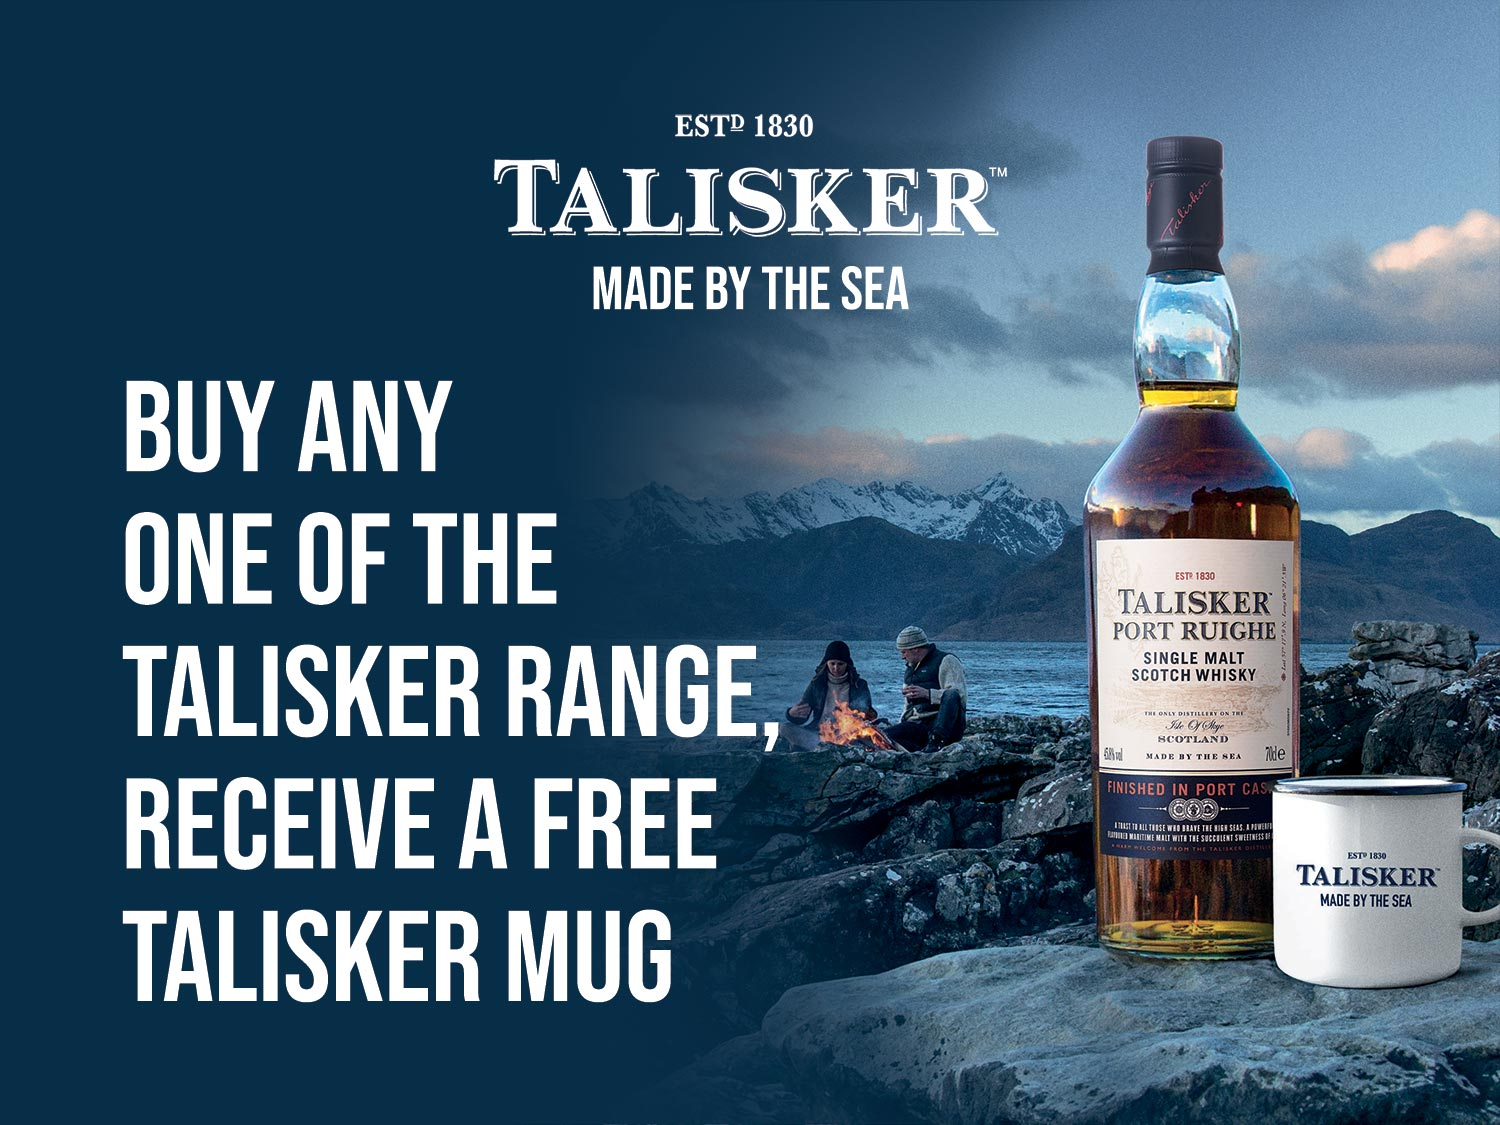 Buy any of the Talisker range and receive a free Talisker mug.